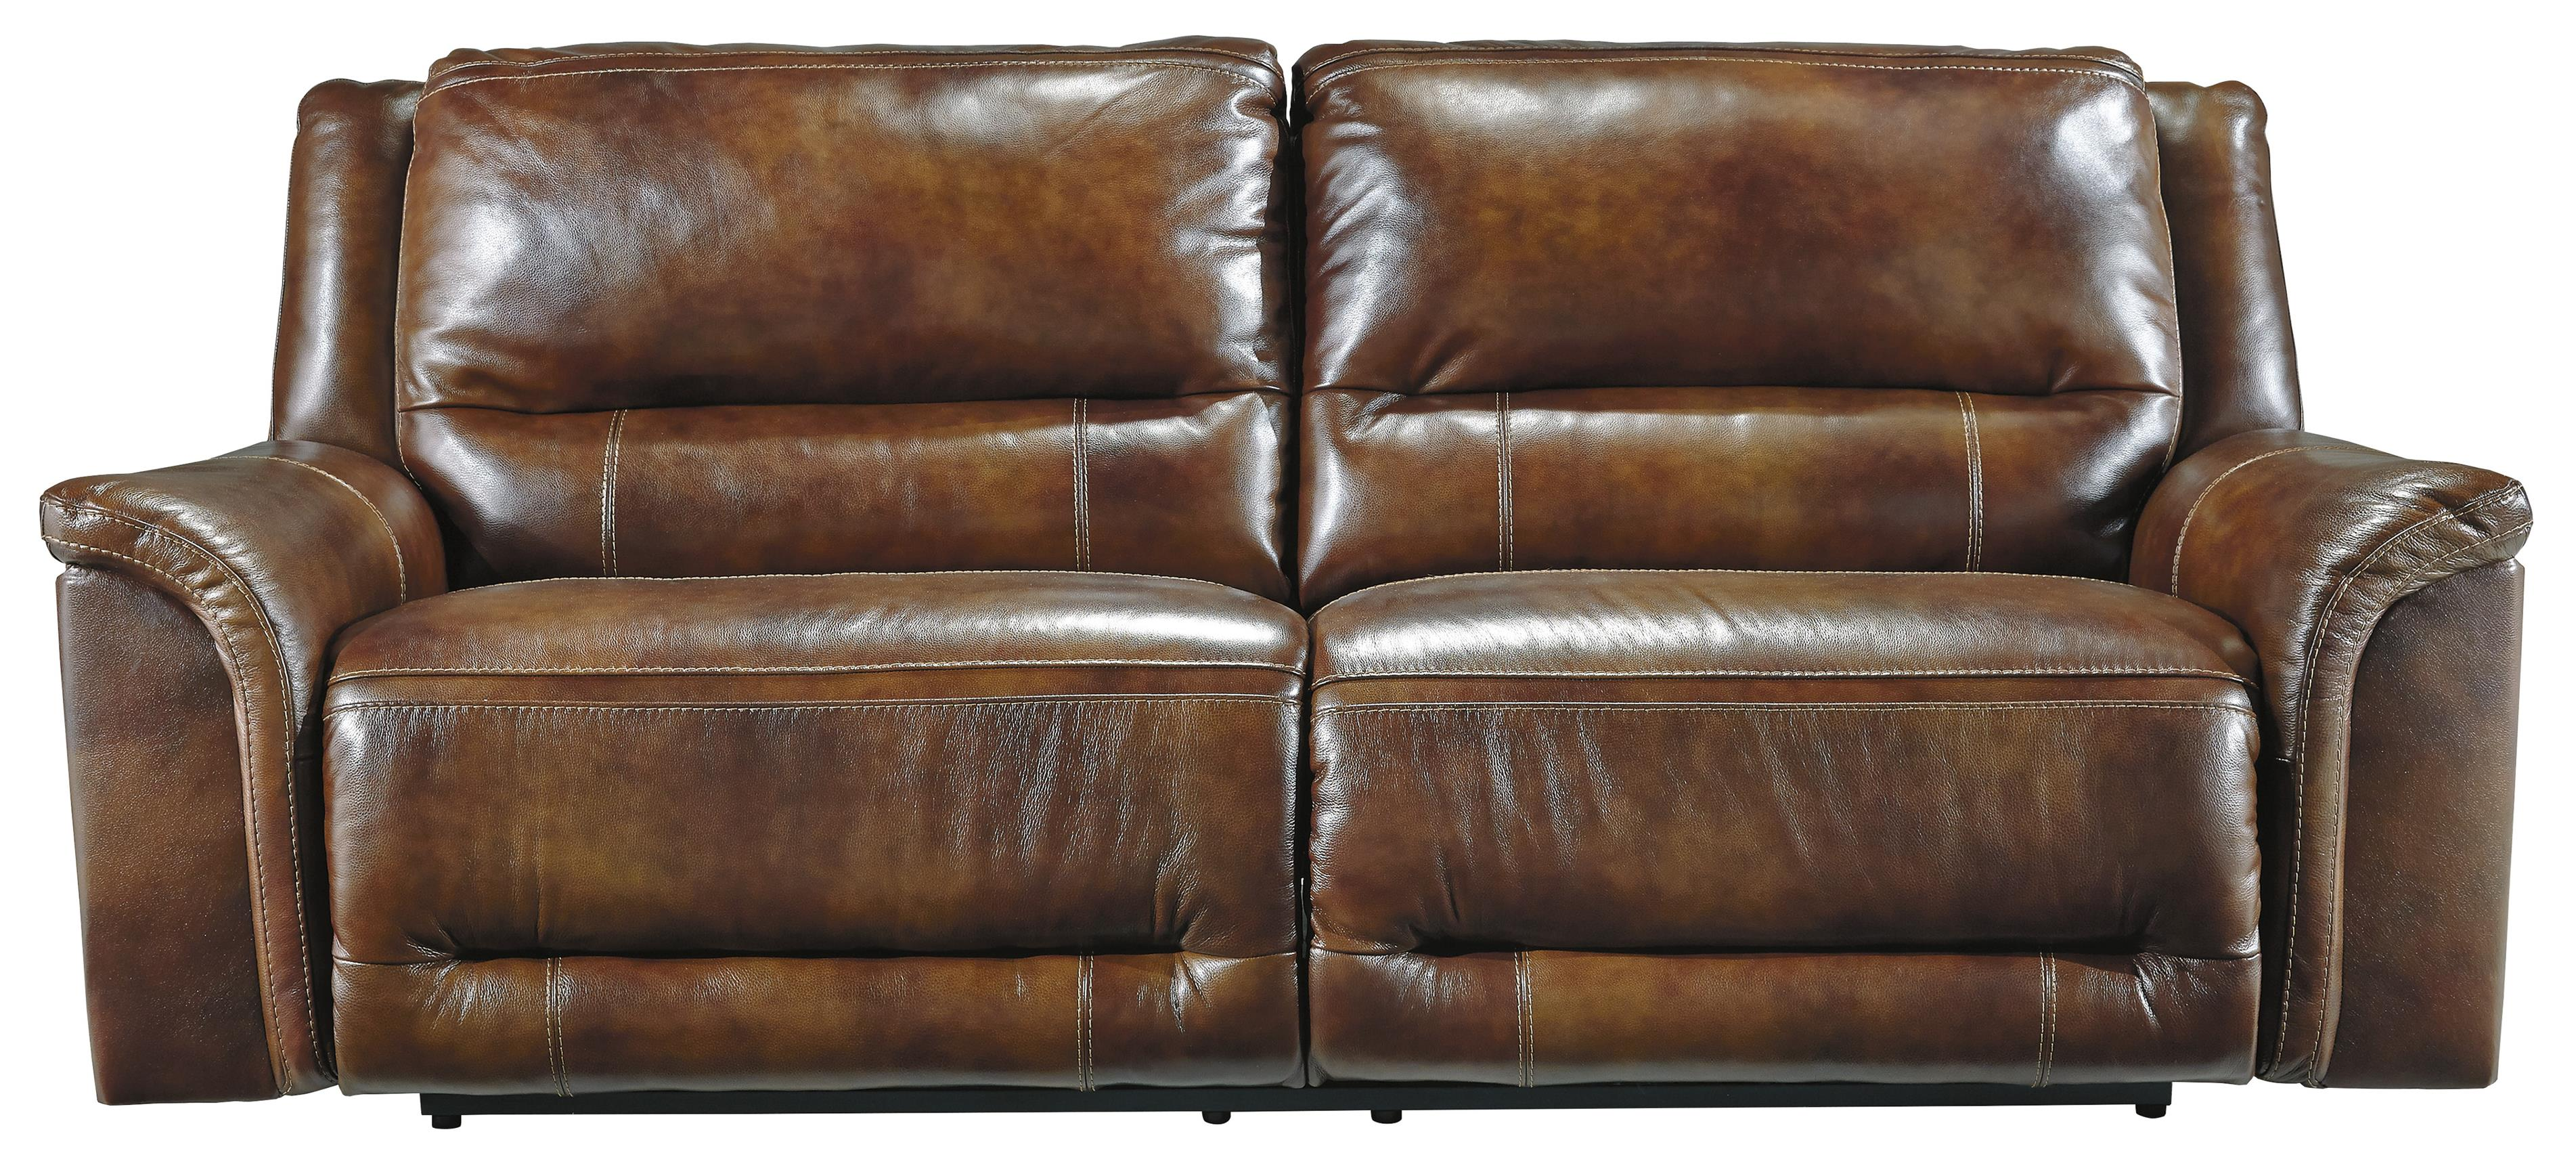 Signature Design by Ashley Jayron 2 Seat Reclining Power Sofa - Item Number: U7660047